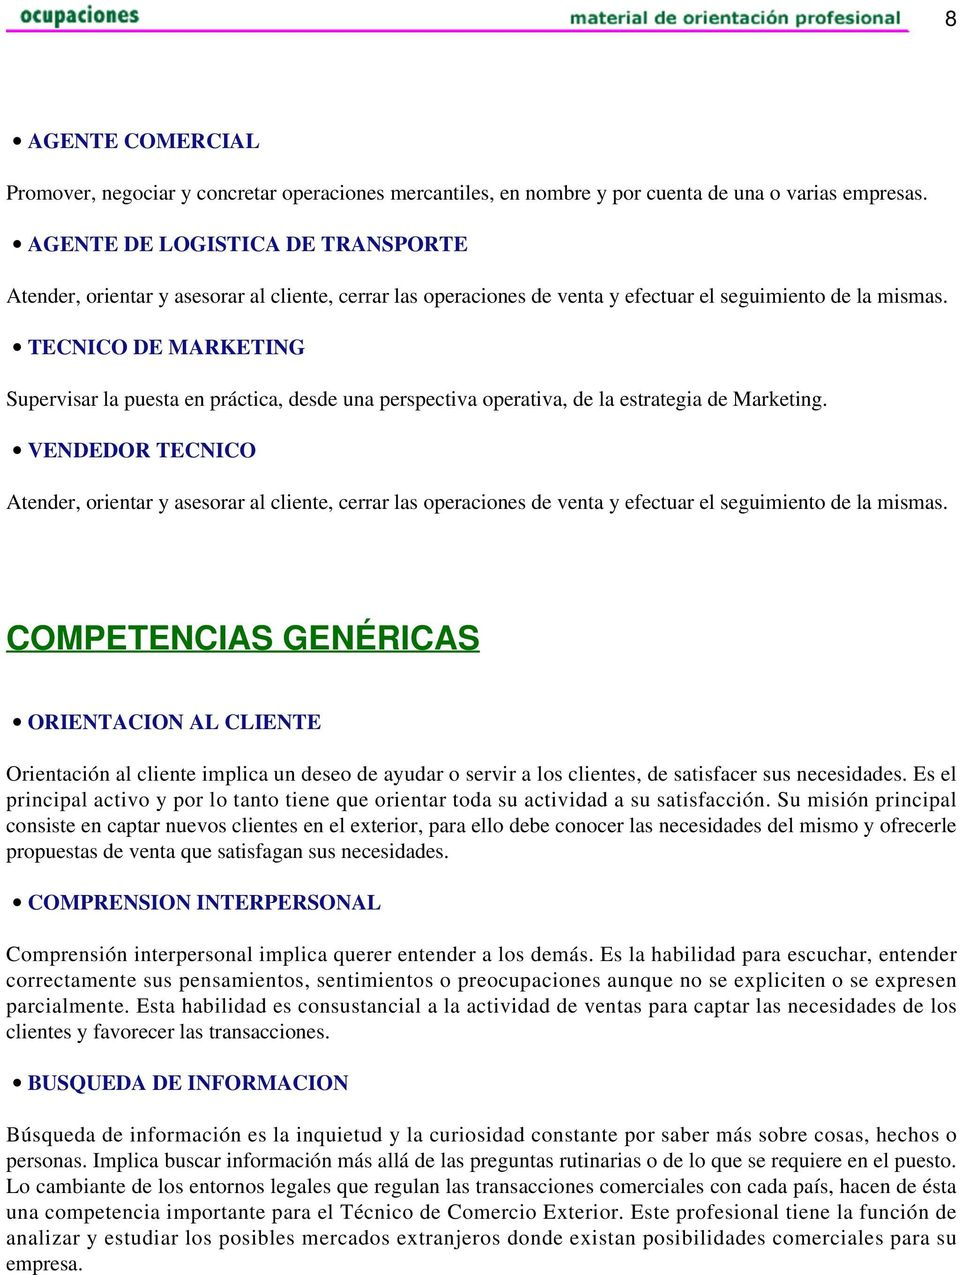 TECNICO DE MARKETING Supervisar la puesta en práctica, desde una perspectiva operativa, de la estrategia de Marketing.